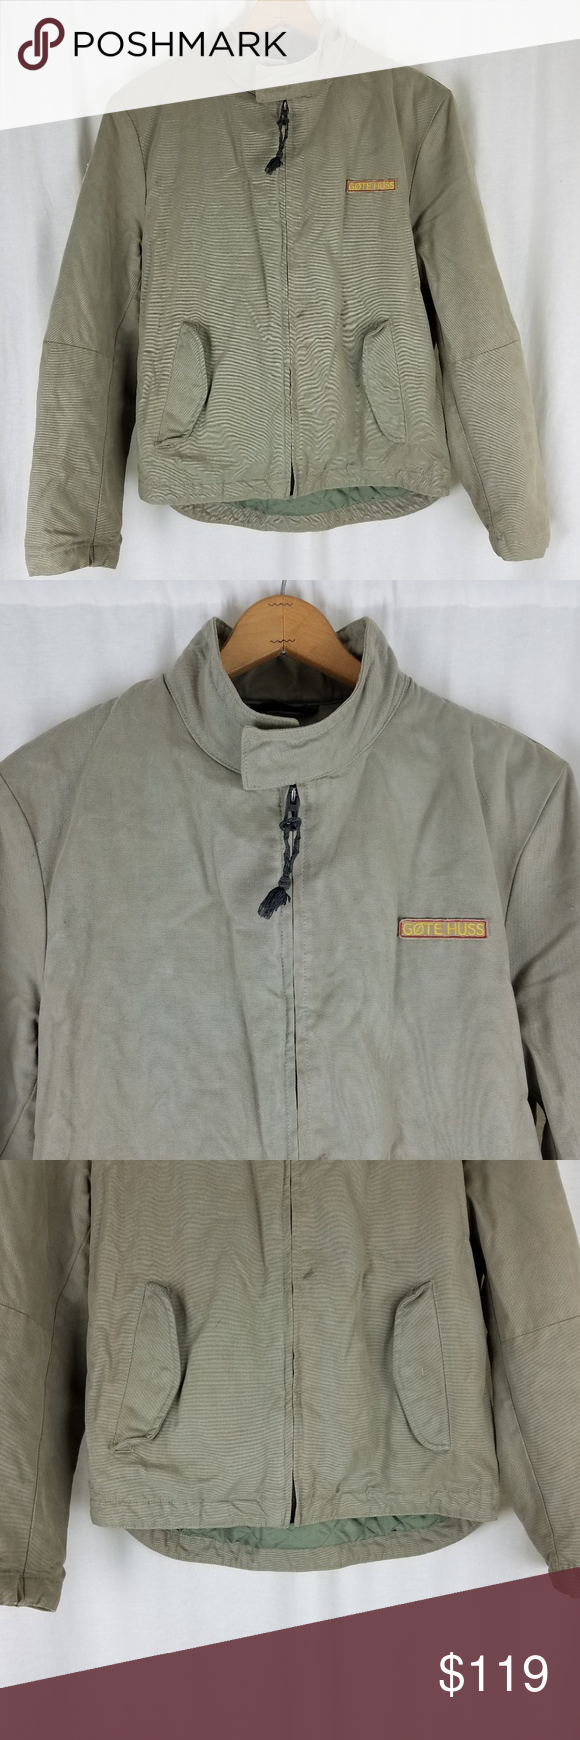 Marc O Polo Campus Stockholm Canvas Bomber Jacket Bomber Jacket Patches Bomber Jacket Jackets [ 1740 x 580 Pixel ]